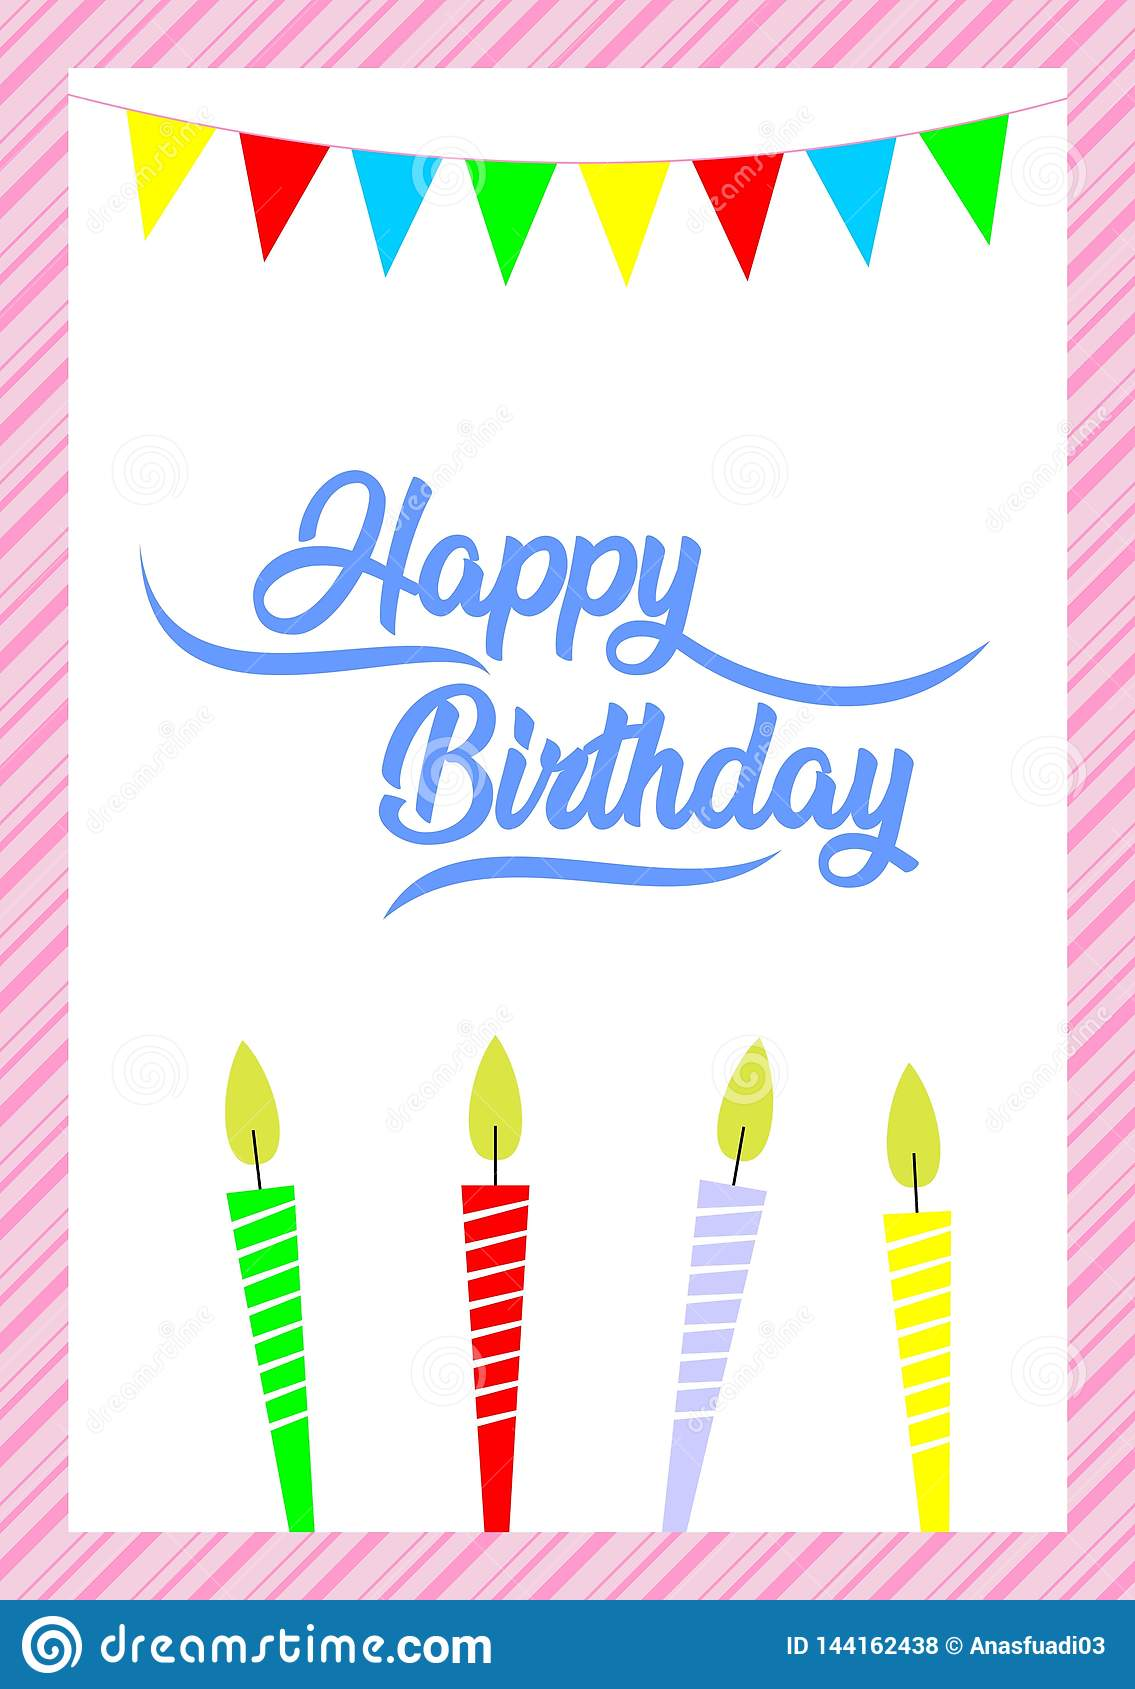 Happy Birthday Greeting Card Simple Cards For Friends Beloved Family